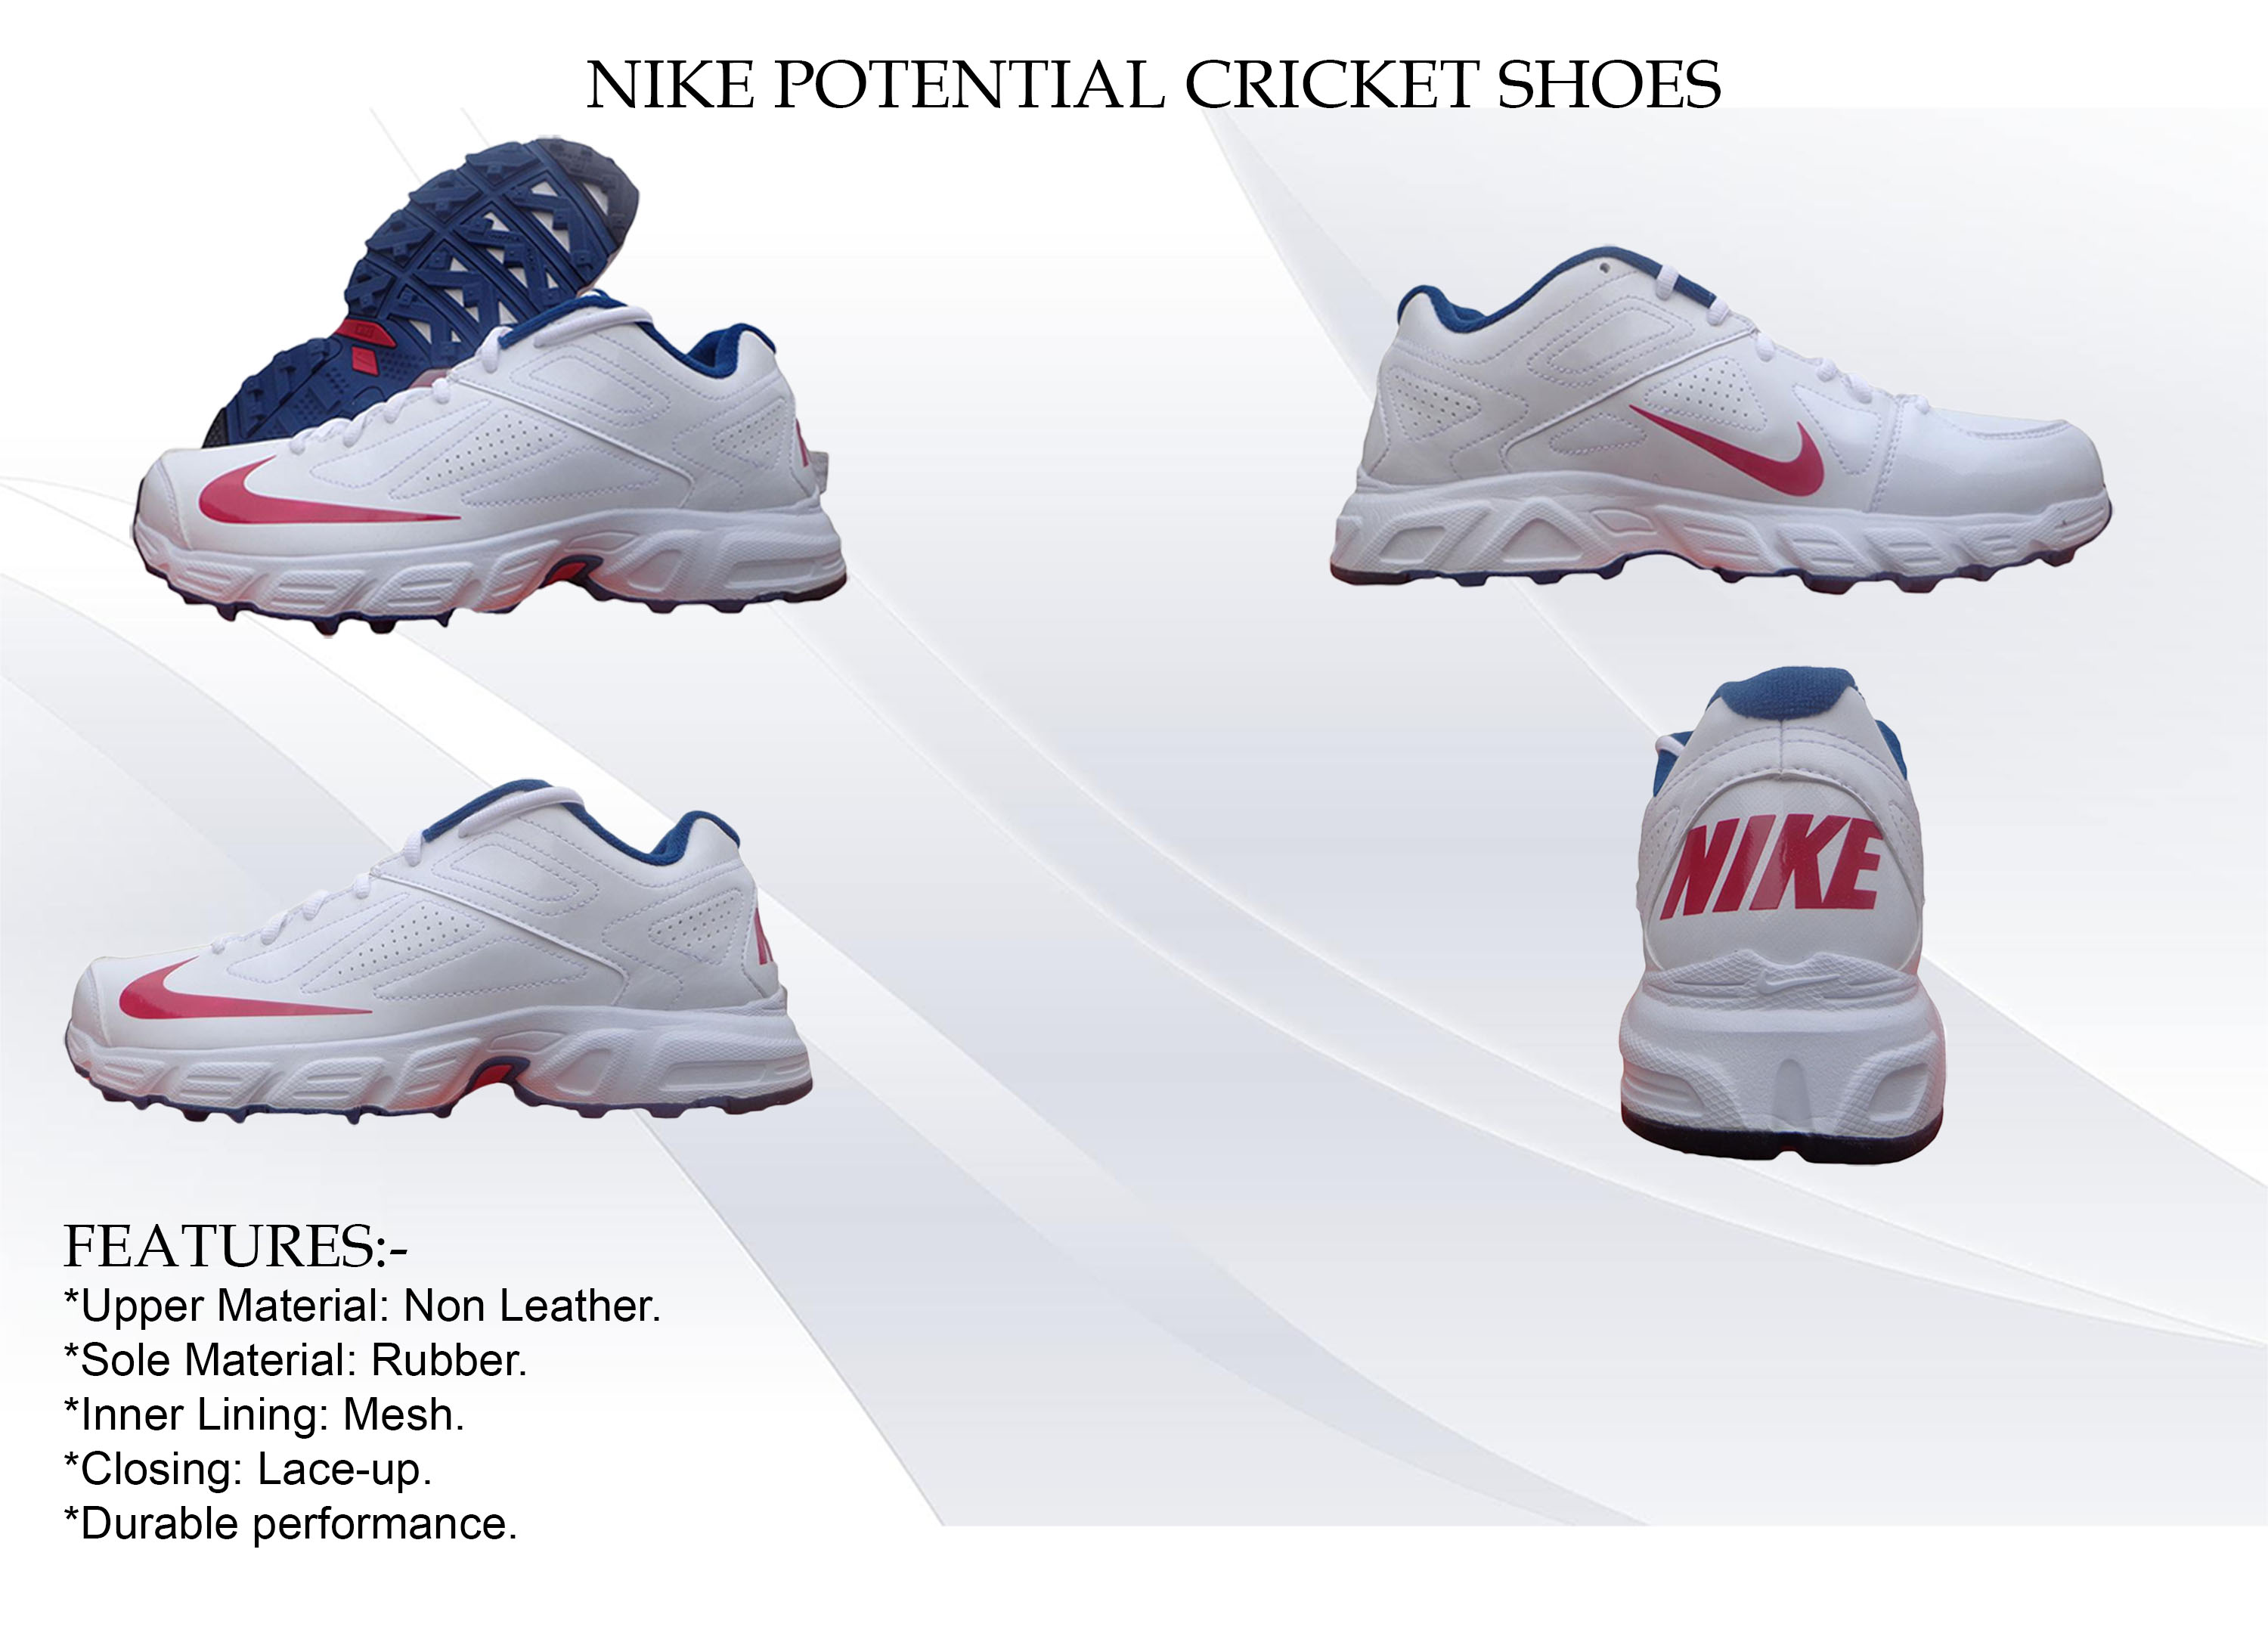 Best Selling Cricket Shoes in Year 2014